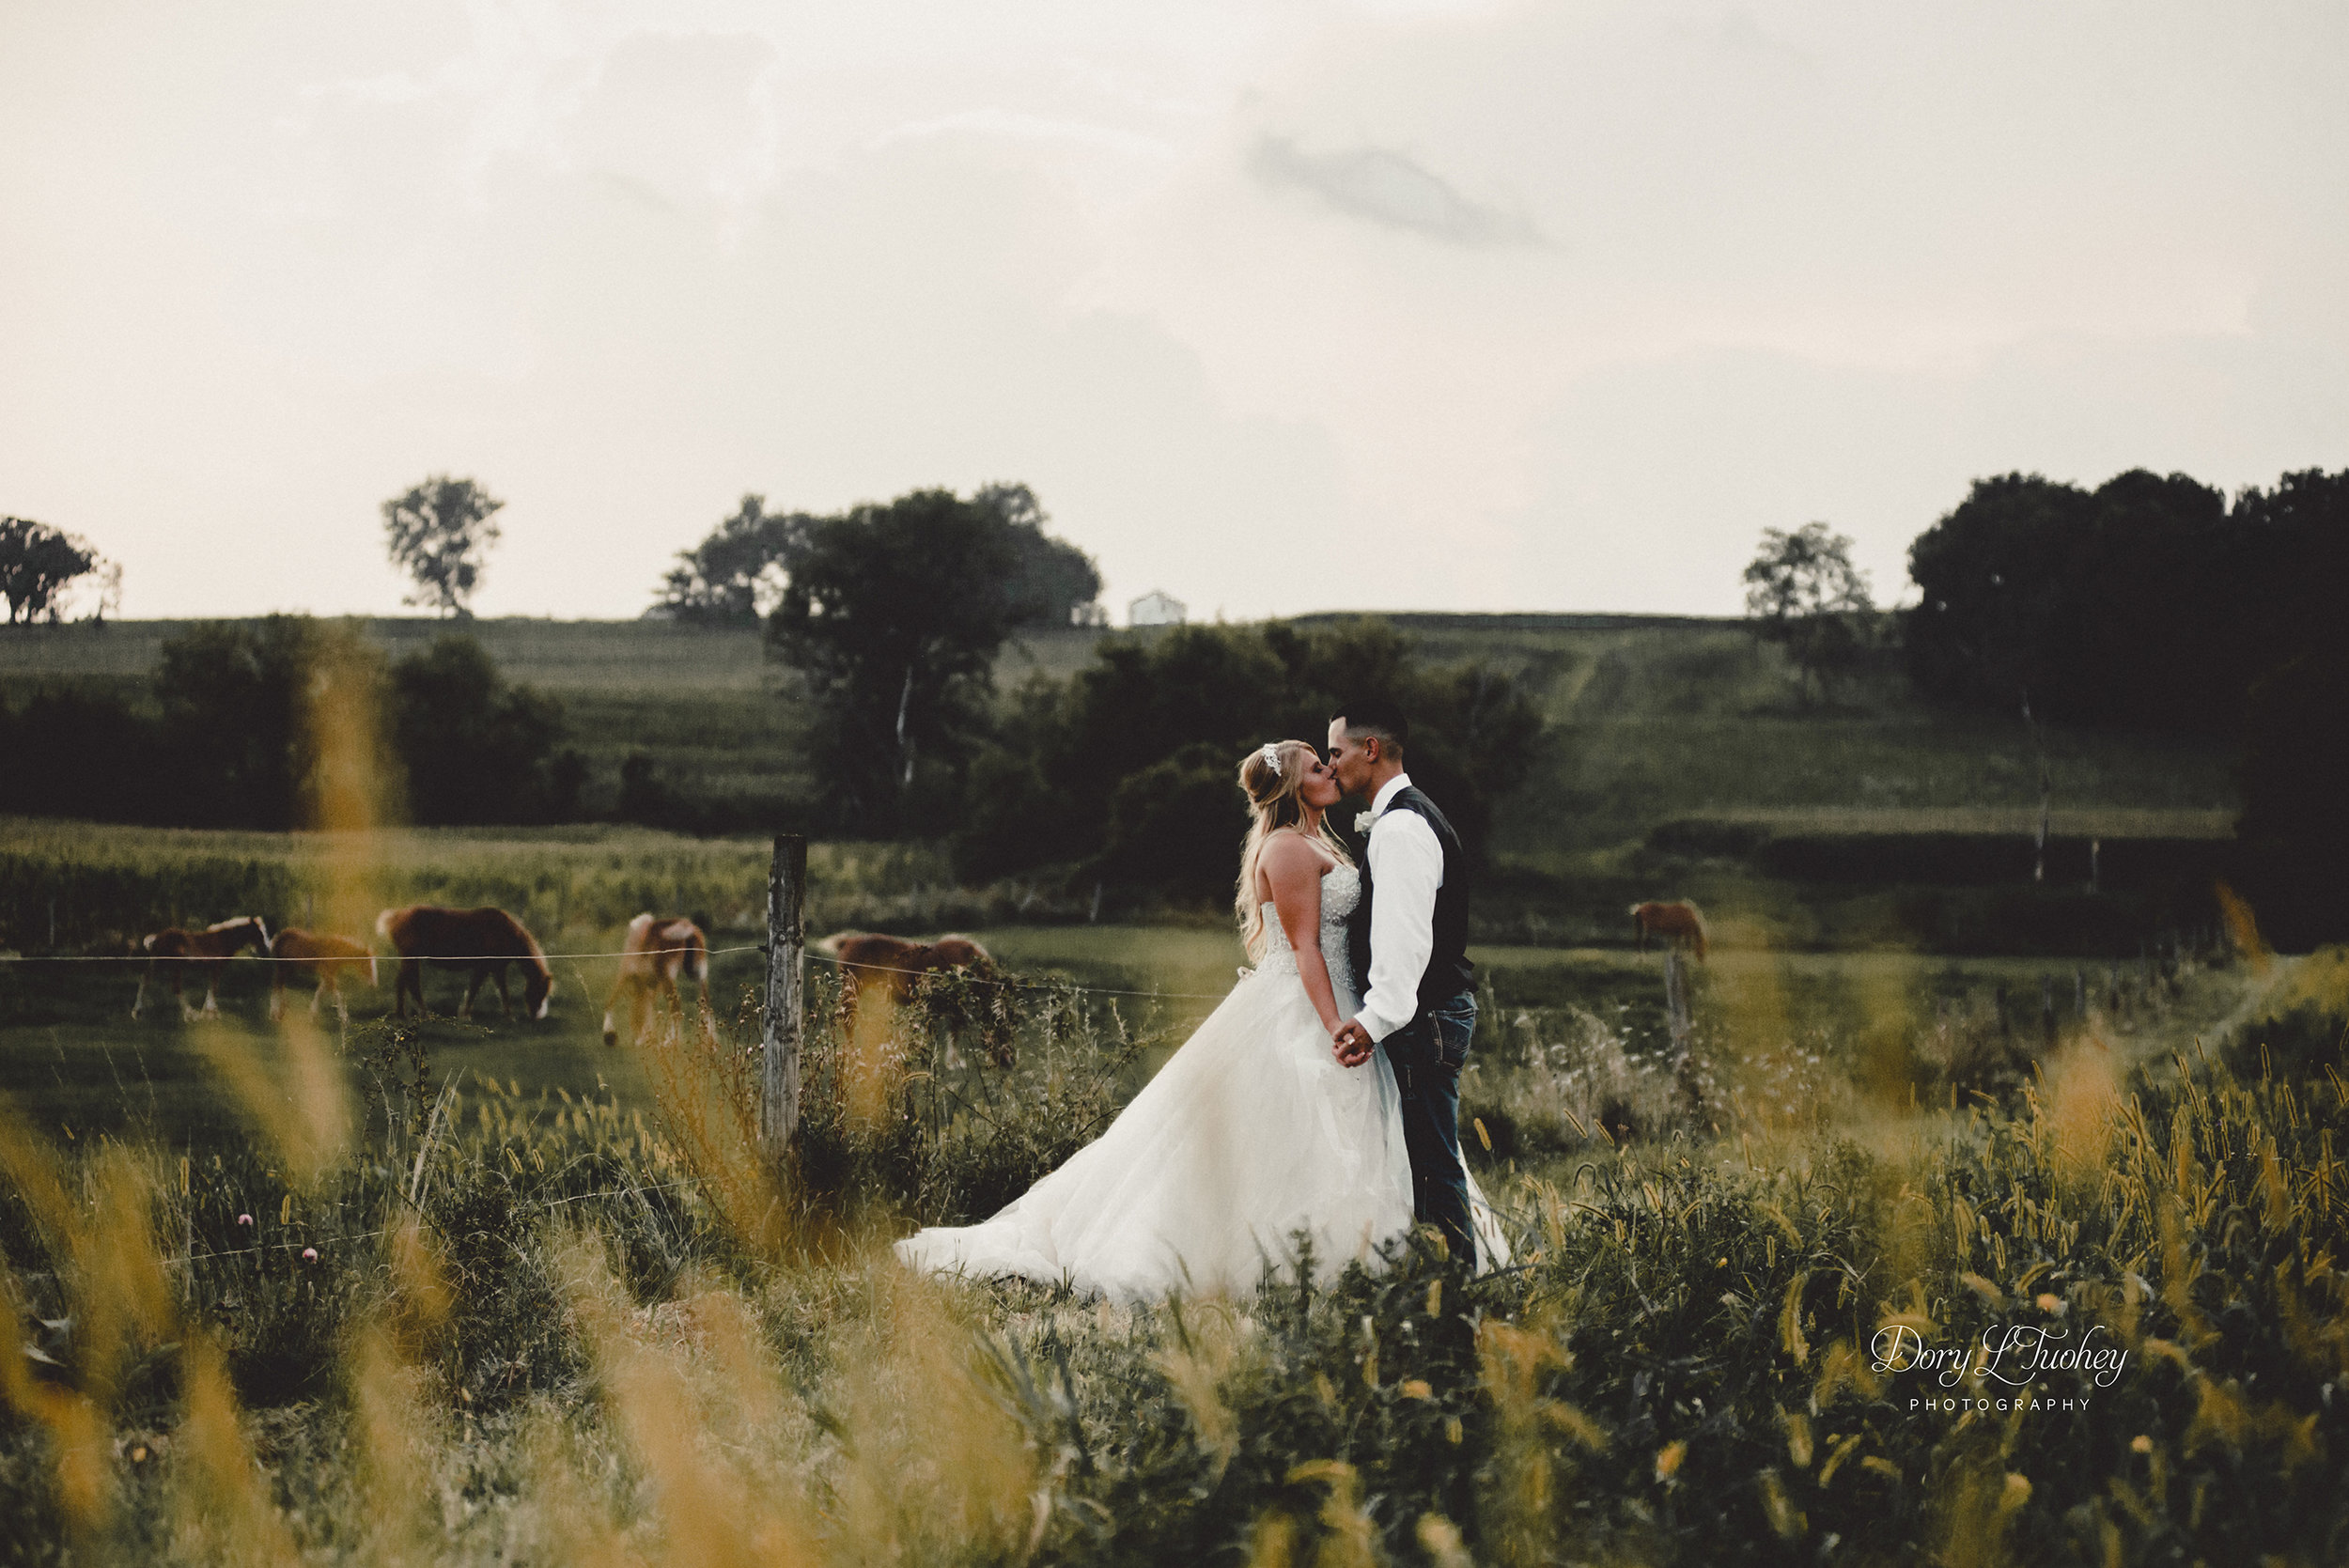 Dory_wedding_farm_country_equestrian_horses_bride_groom_apple_valley_15.jpg